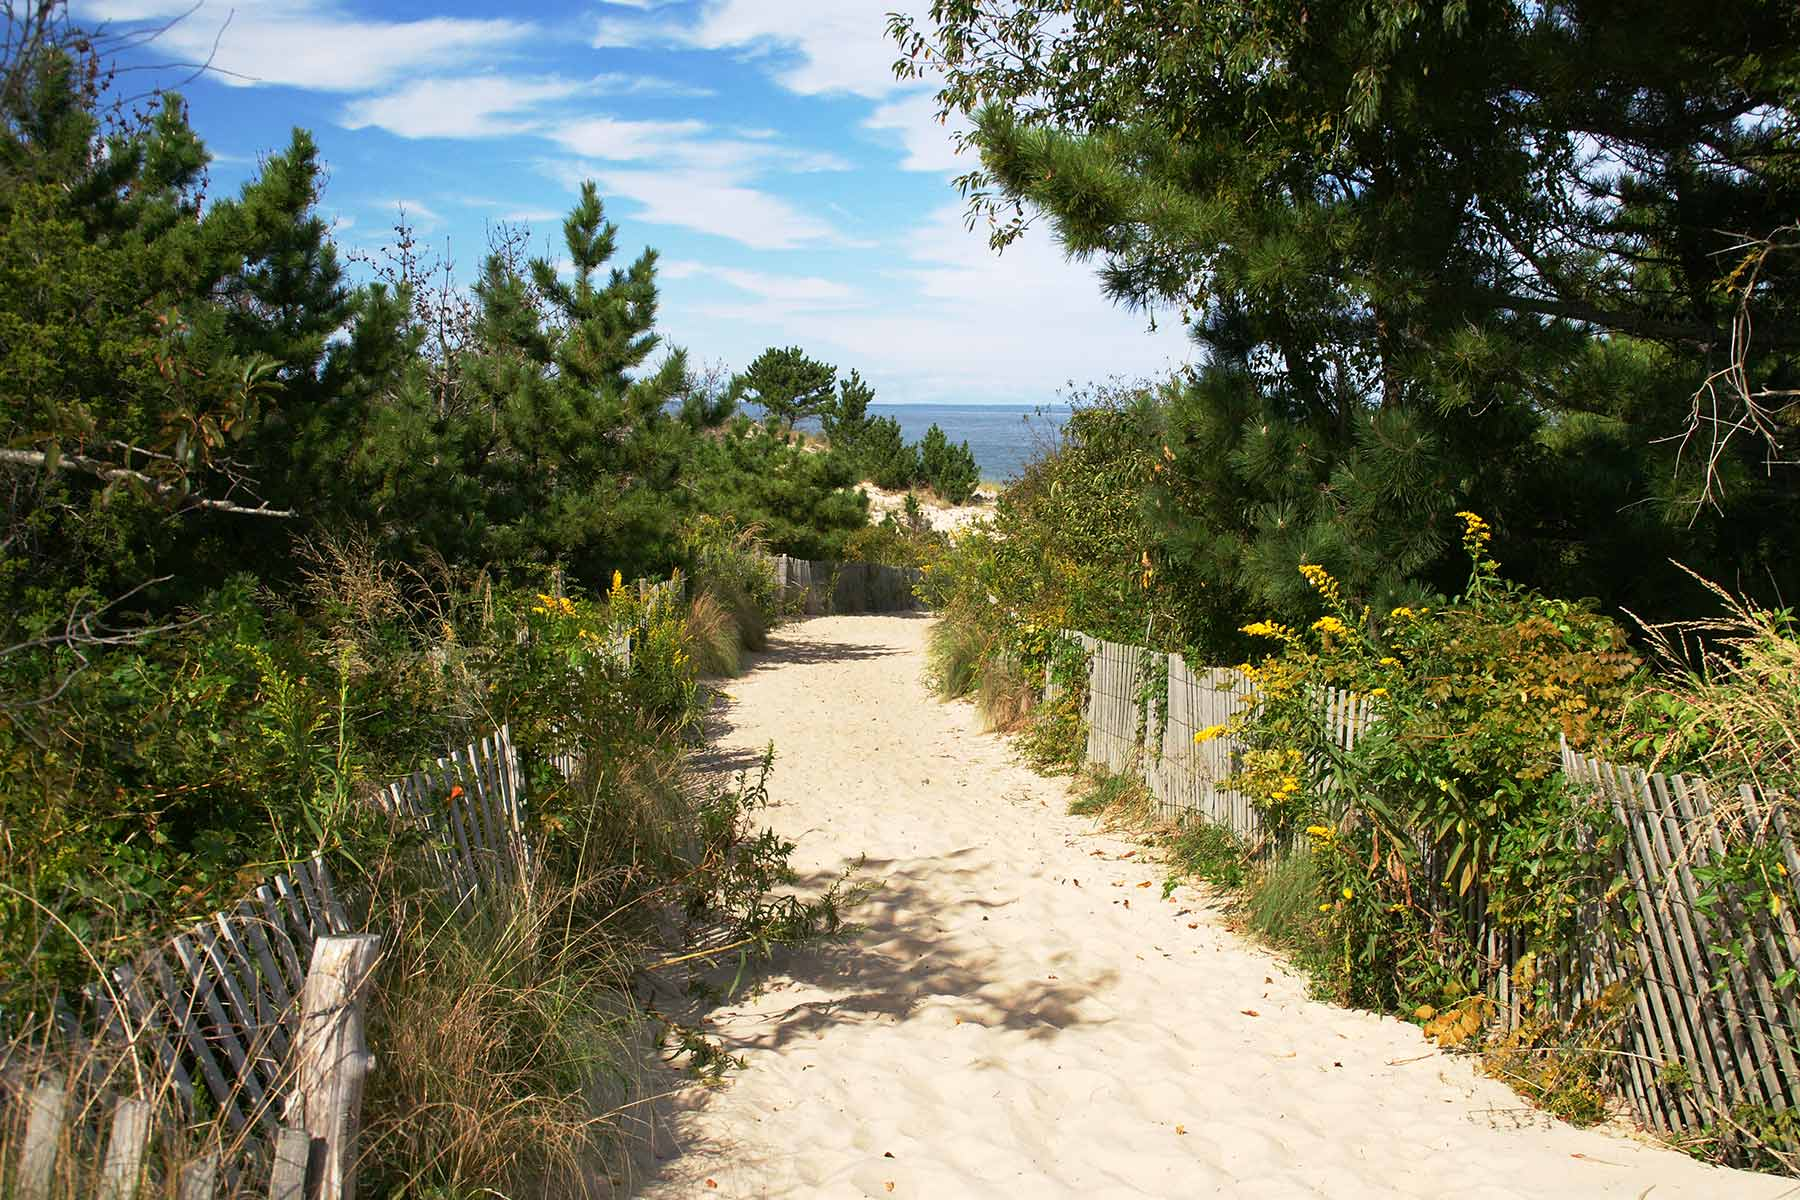 Campgrounds in Lewes, Rehoboth Beach, Dewey Beach, Bethany